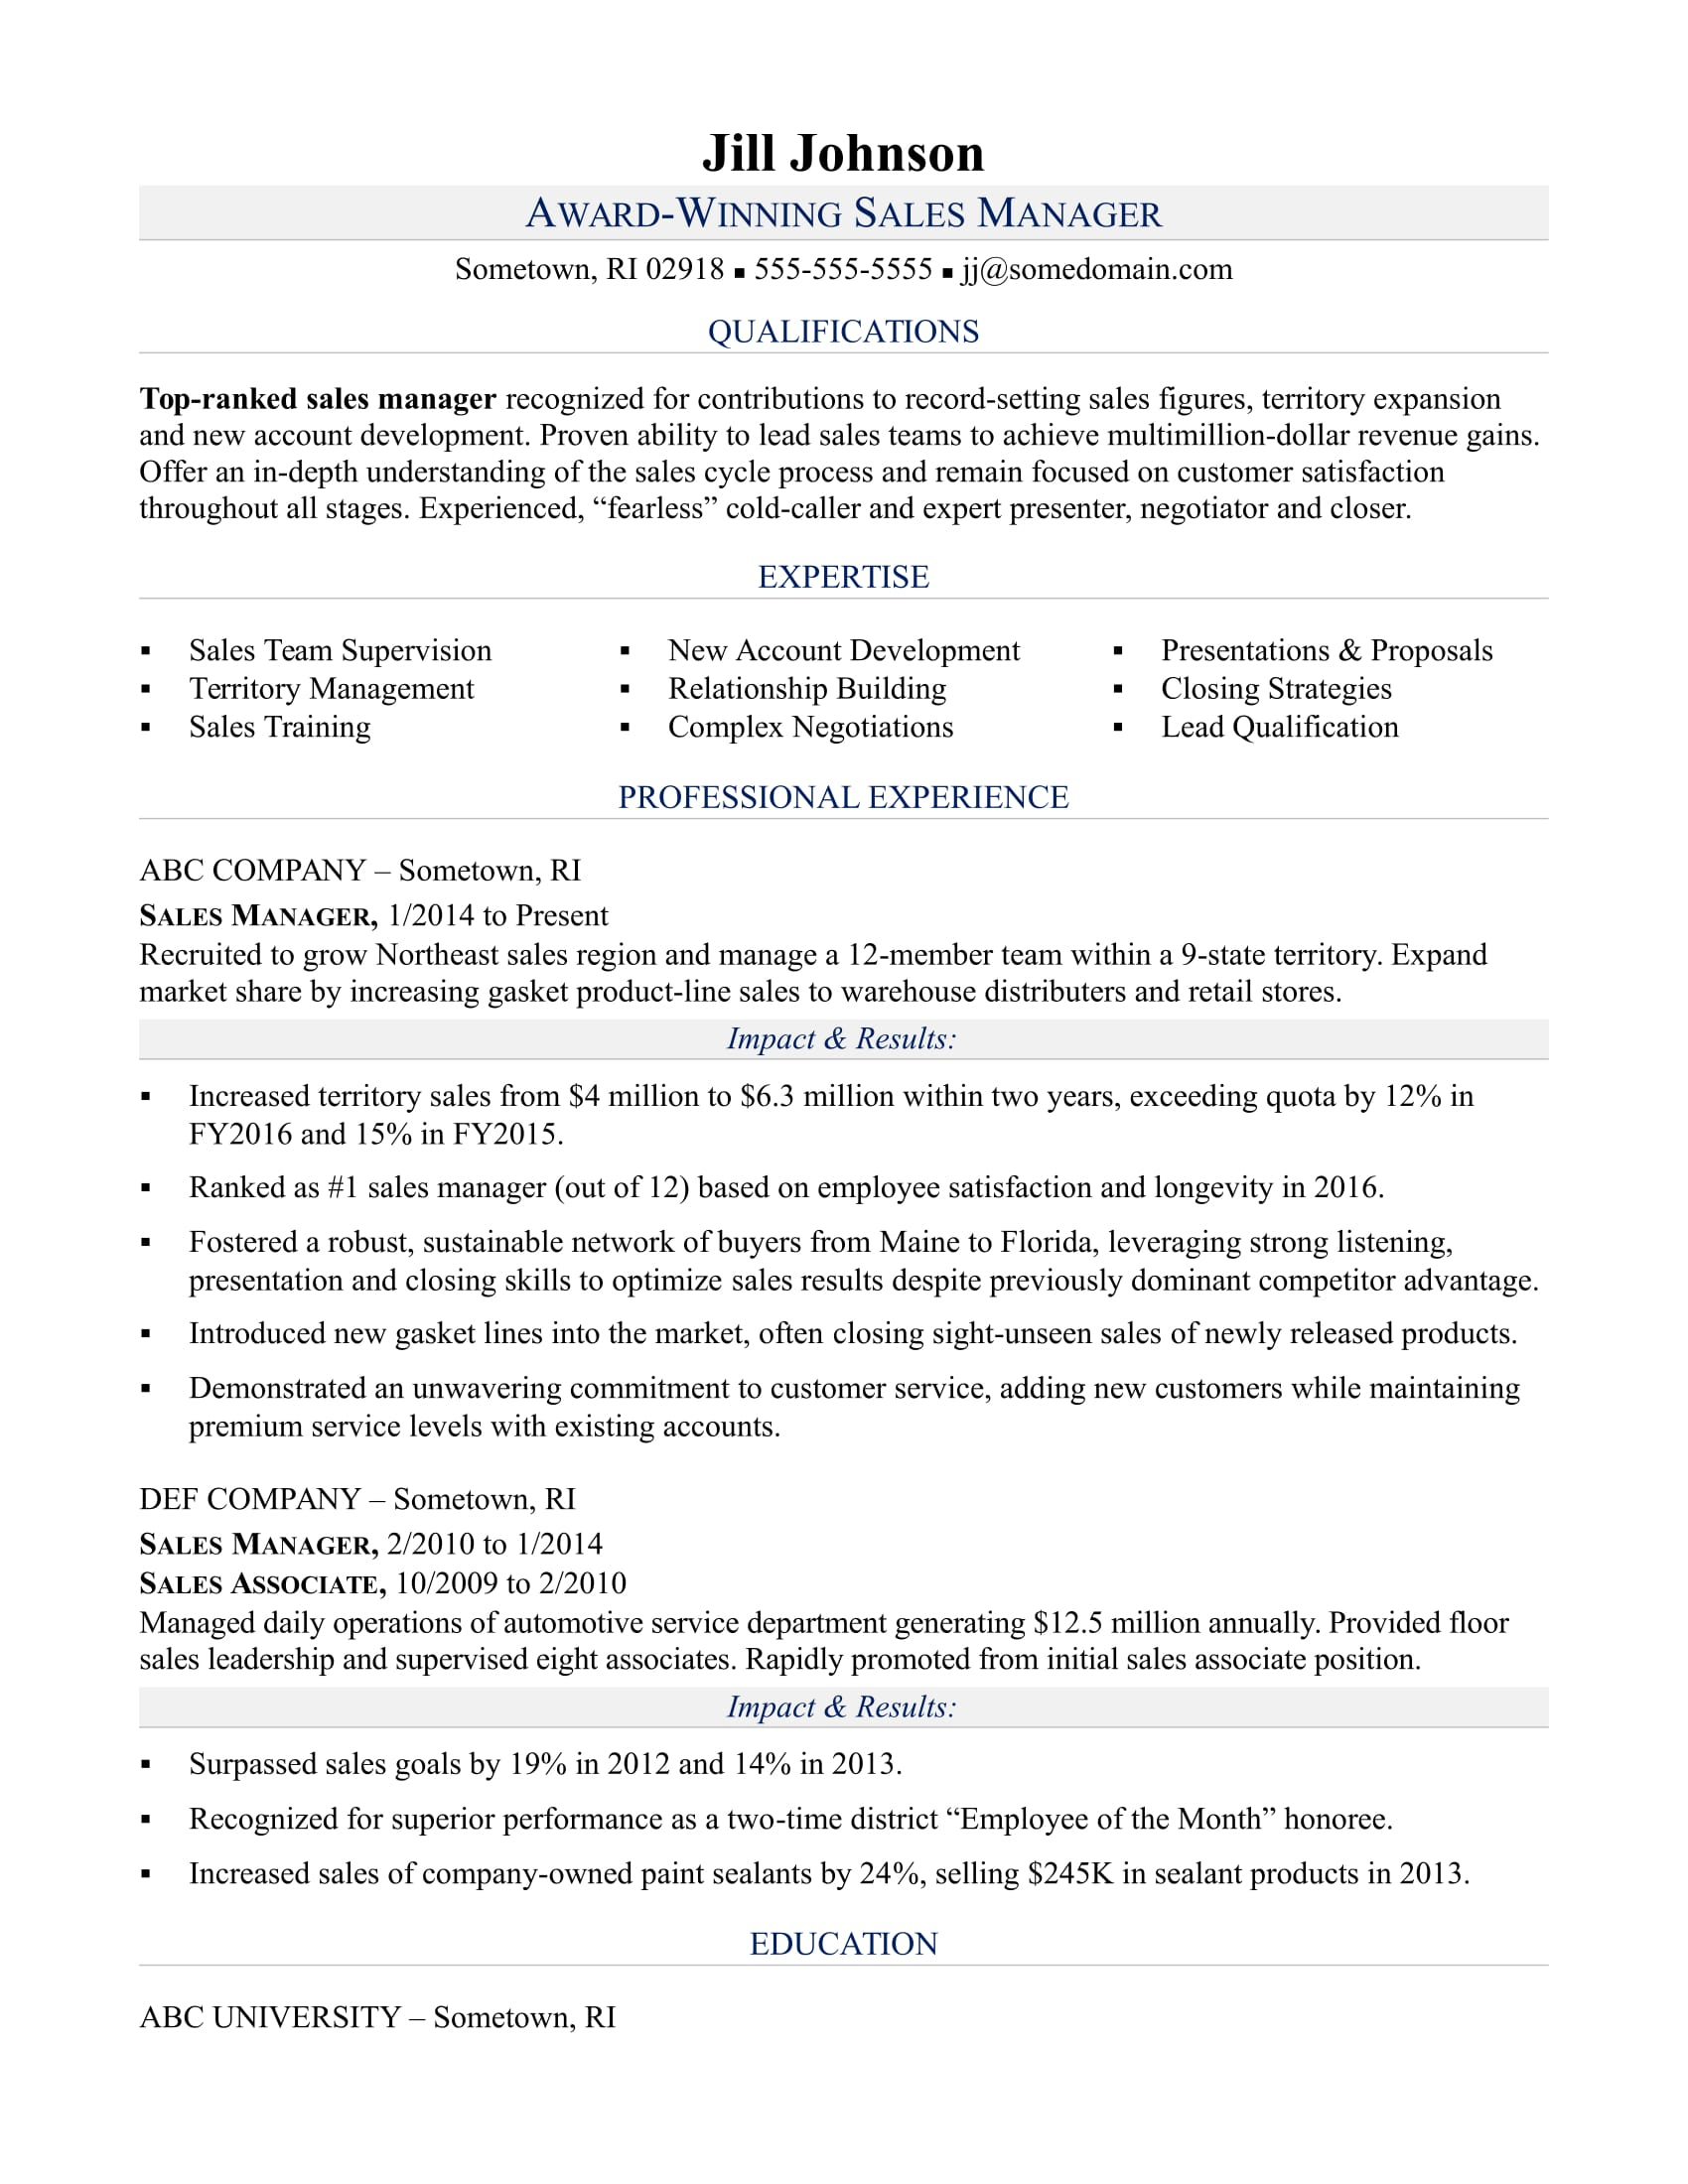 sample resume for a sales manager - Software Sales Manager Job Description